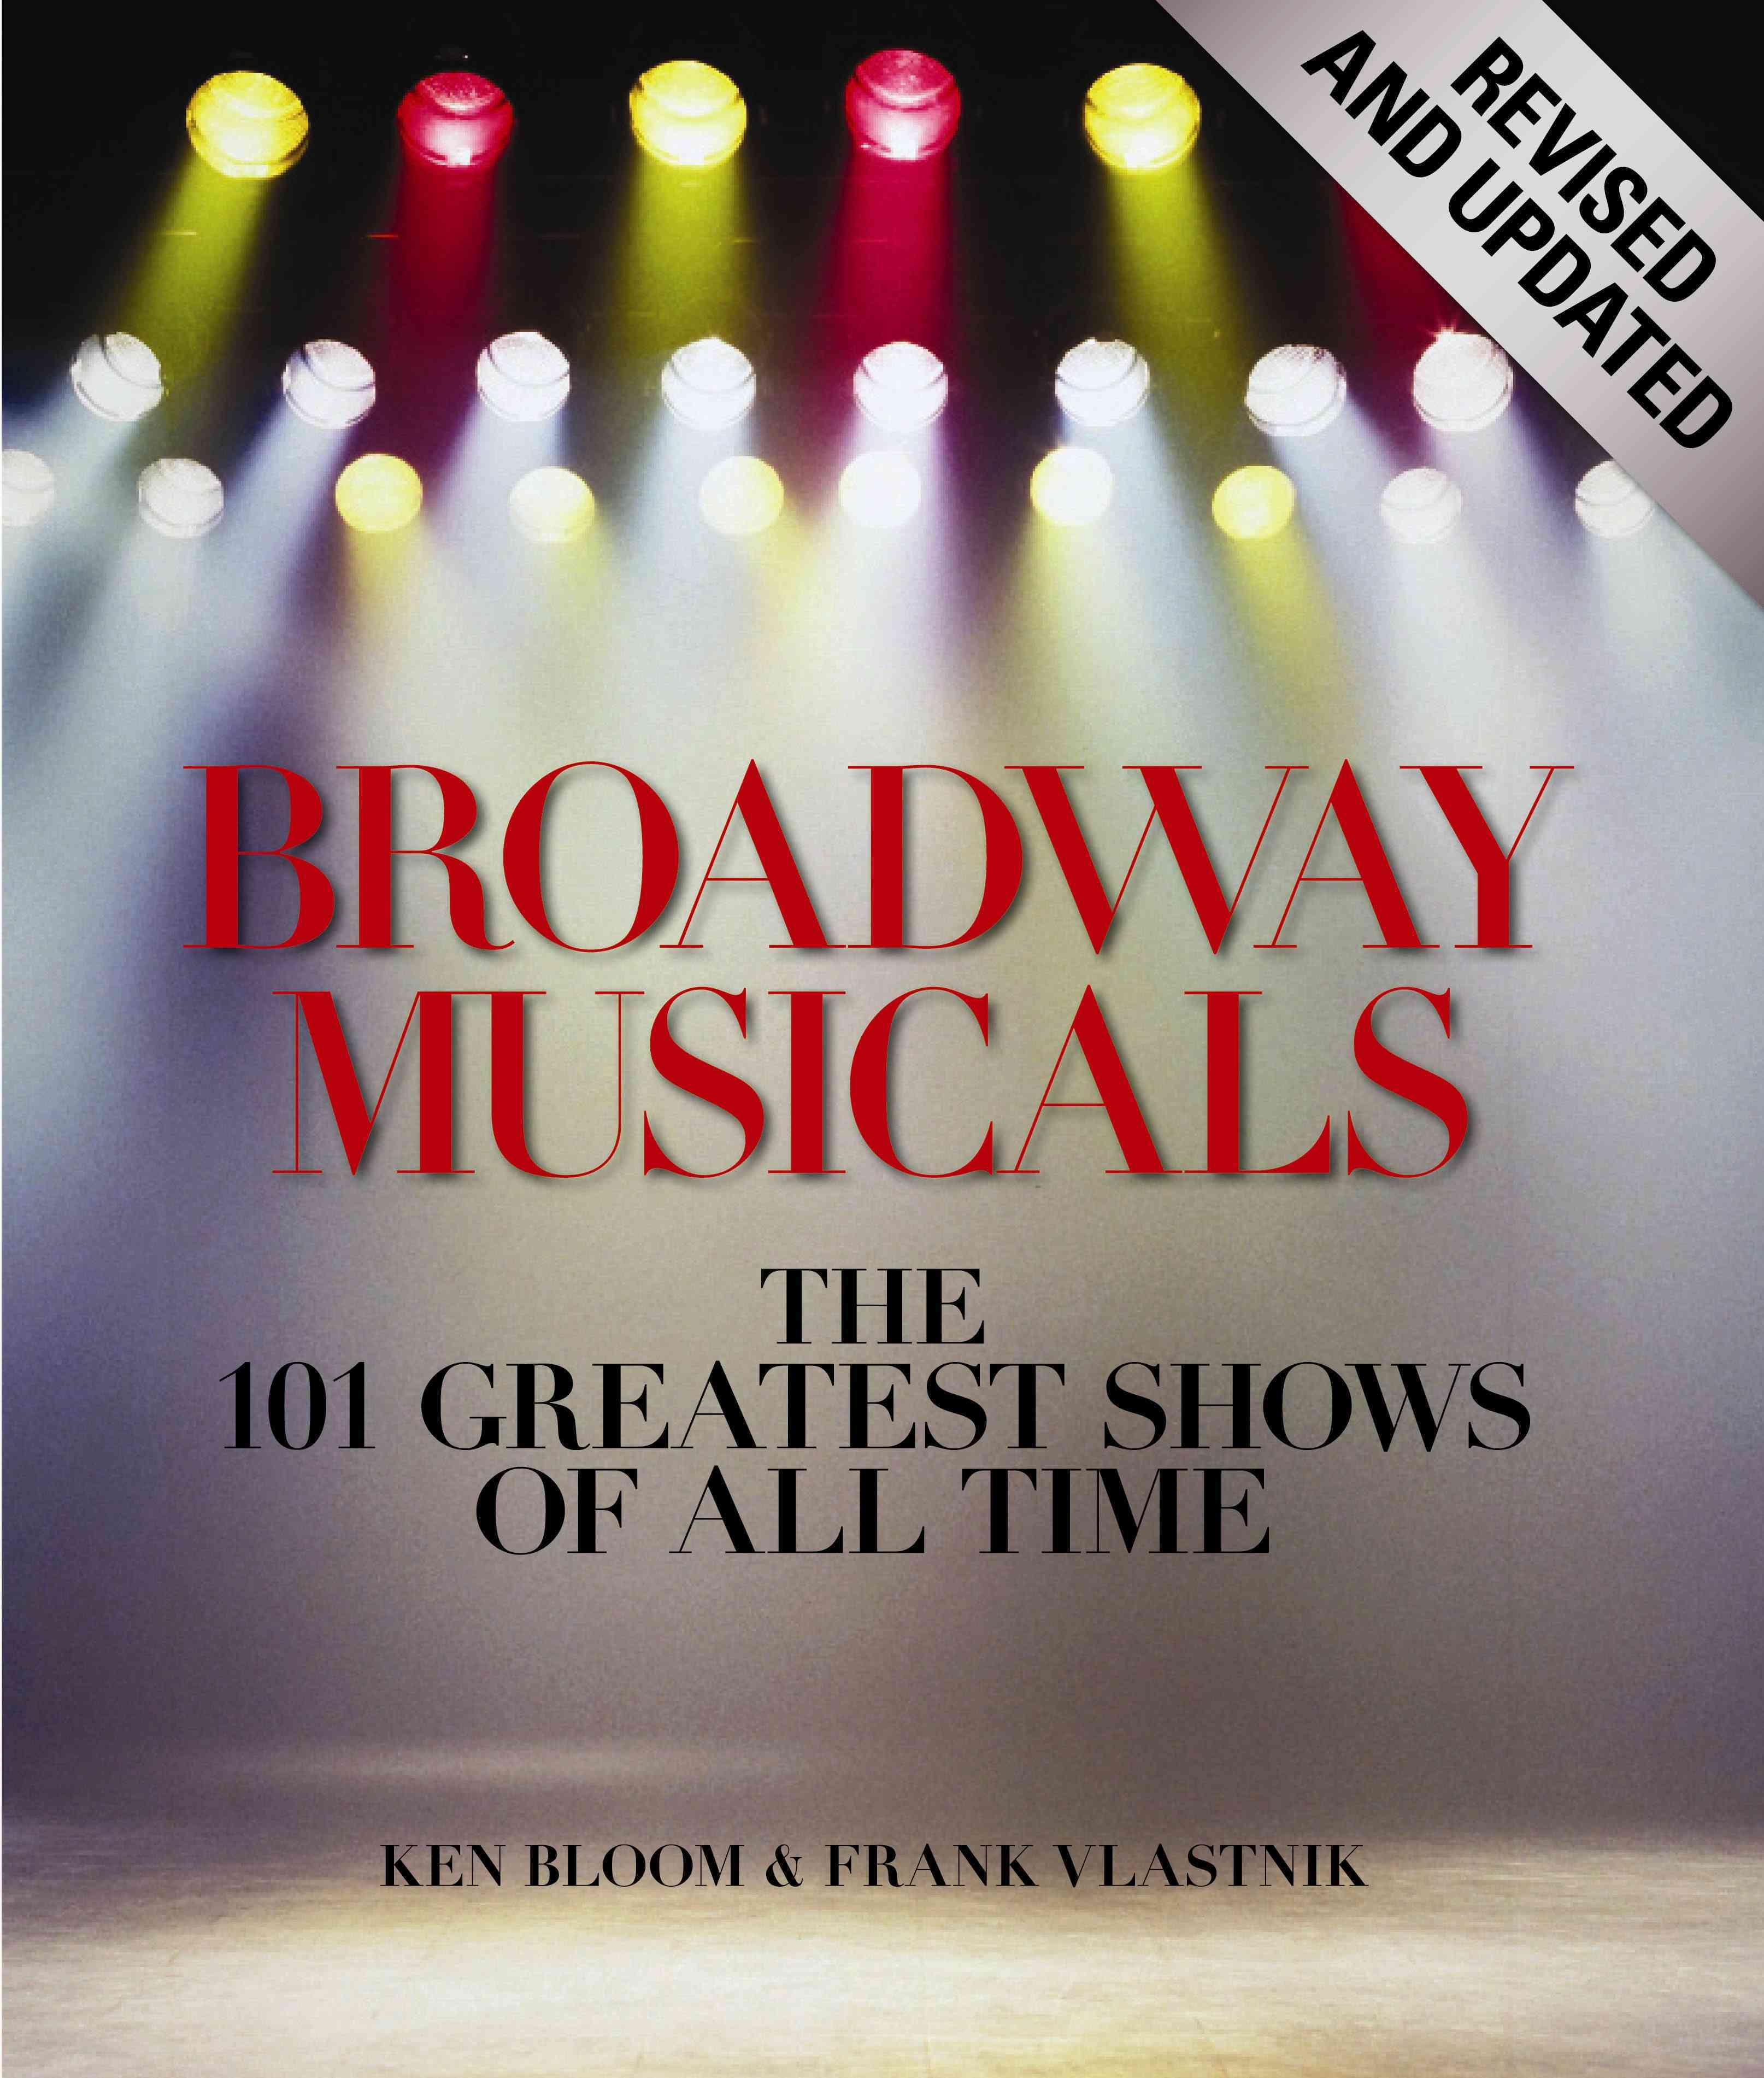 Broadway Musicals: The 101 Greatest Shows of All Time (Hardcover)